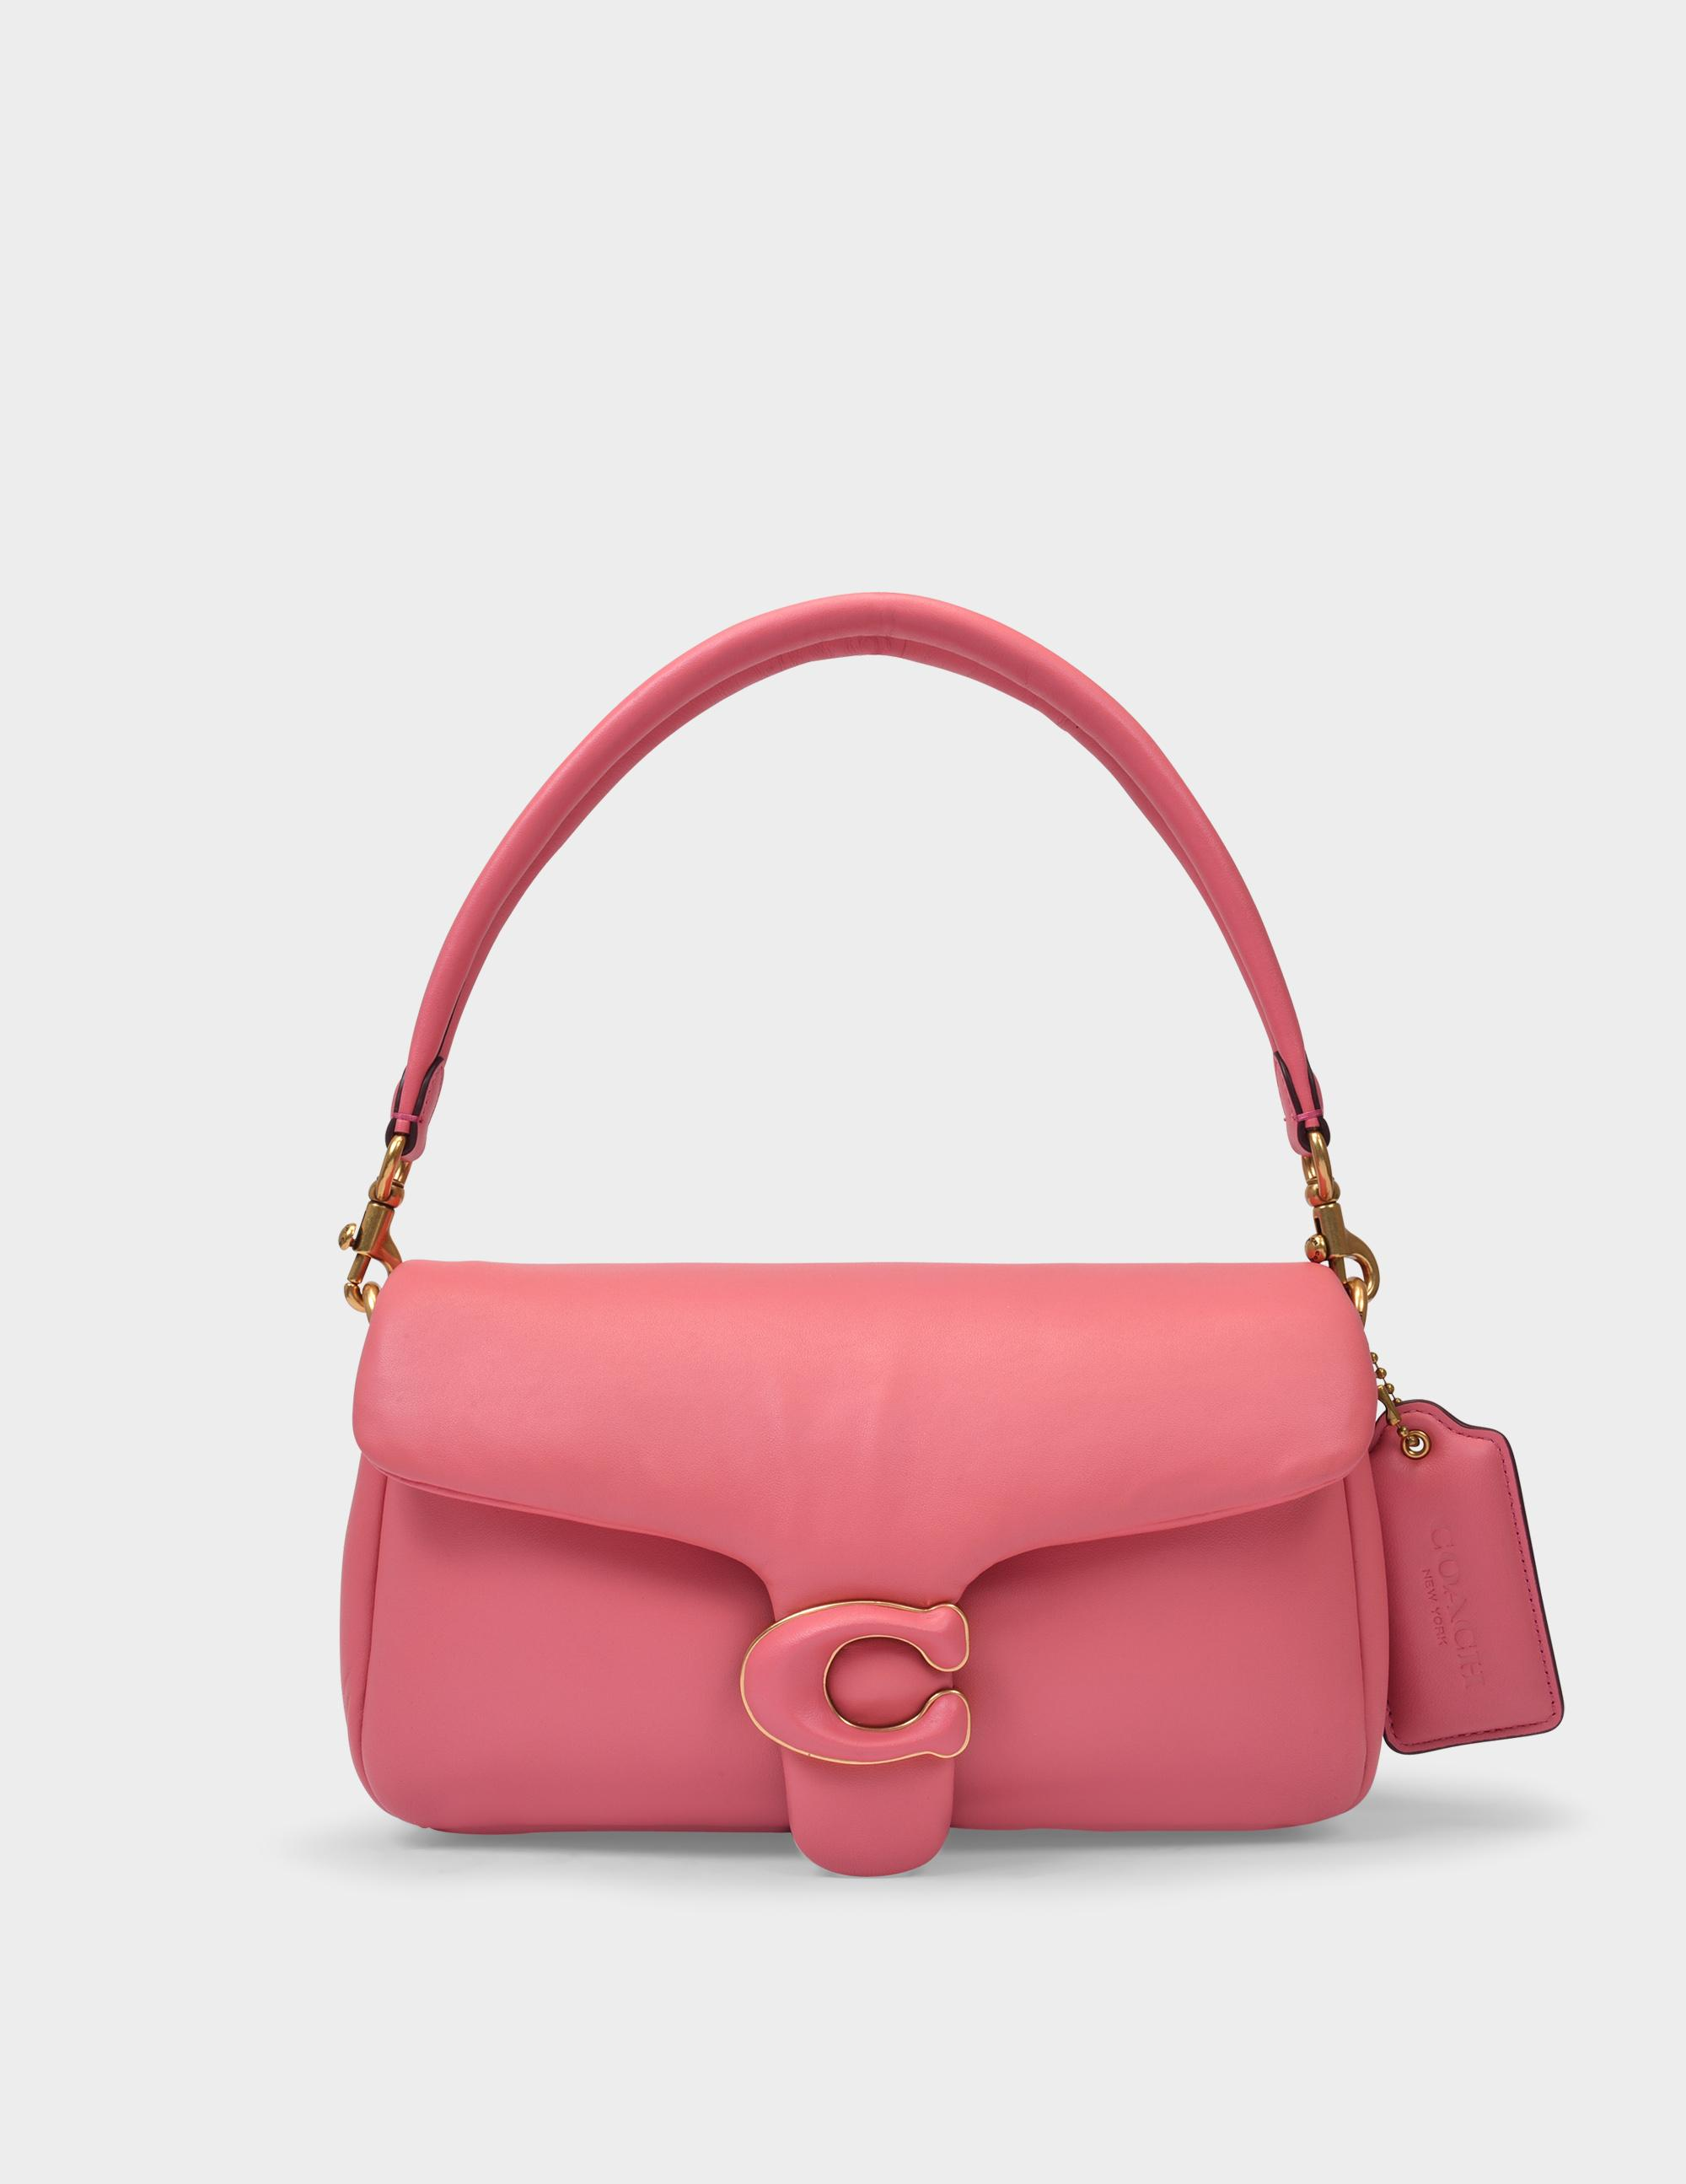 Tabby Pillow Bag In Taffy Pink Leather